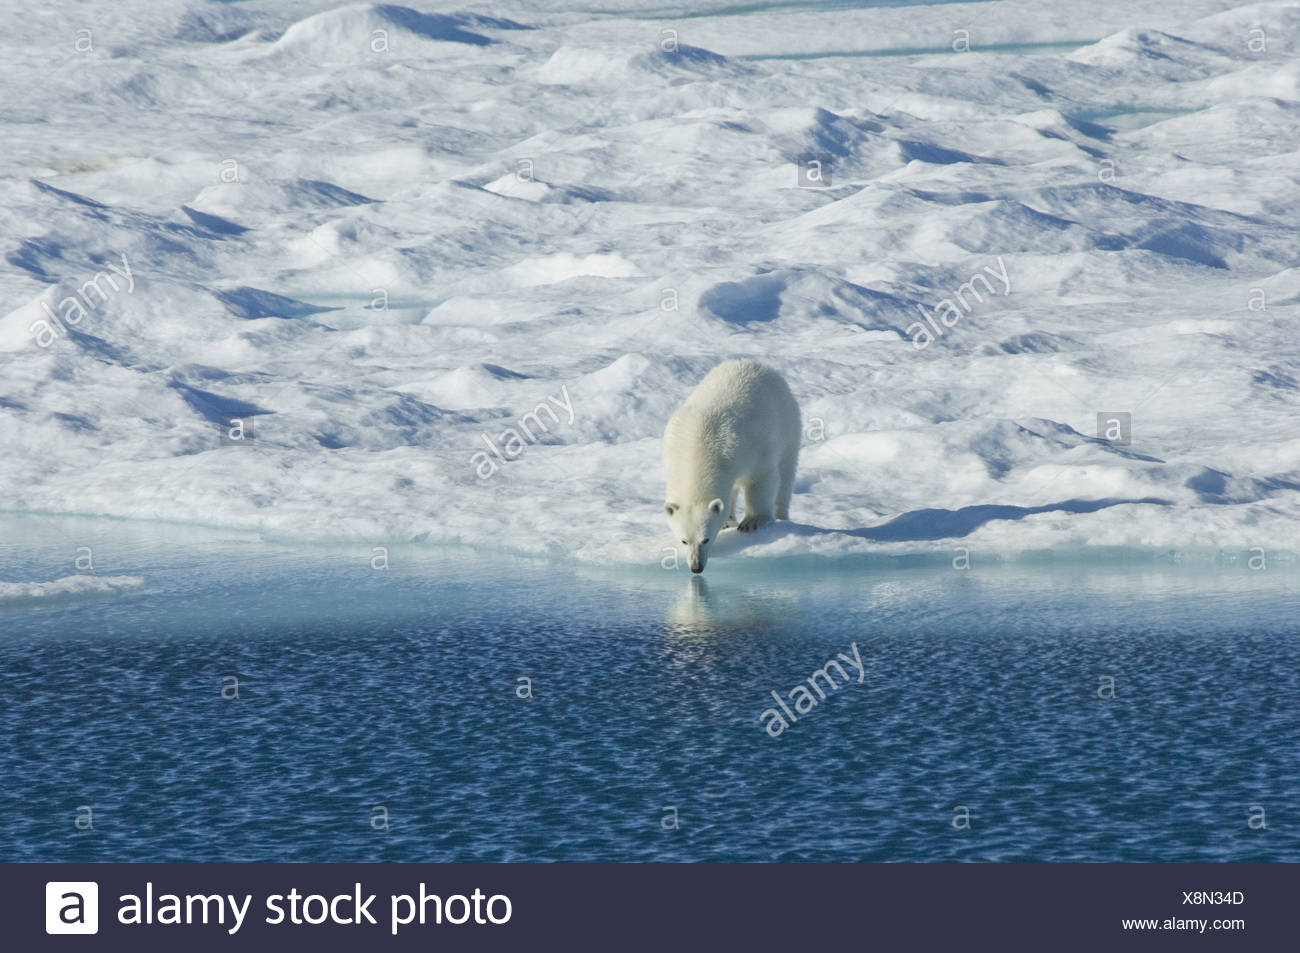 Polar bear in the wild A powerful predator and a vulnerable or potentially endangered species - Stock Image